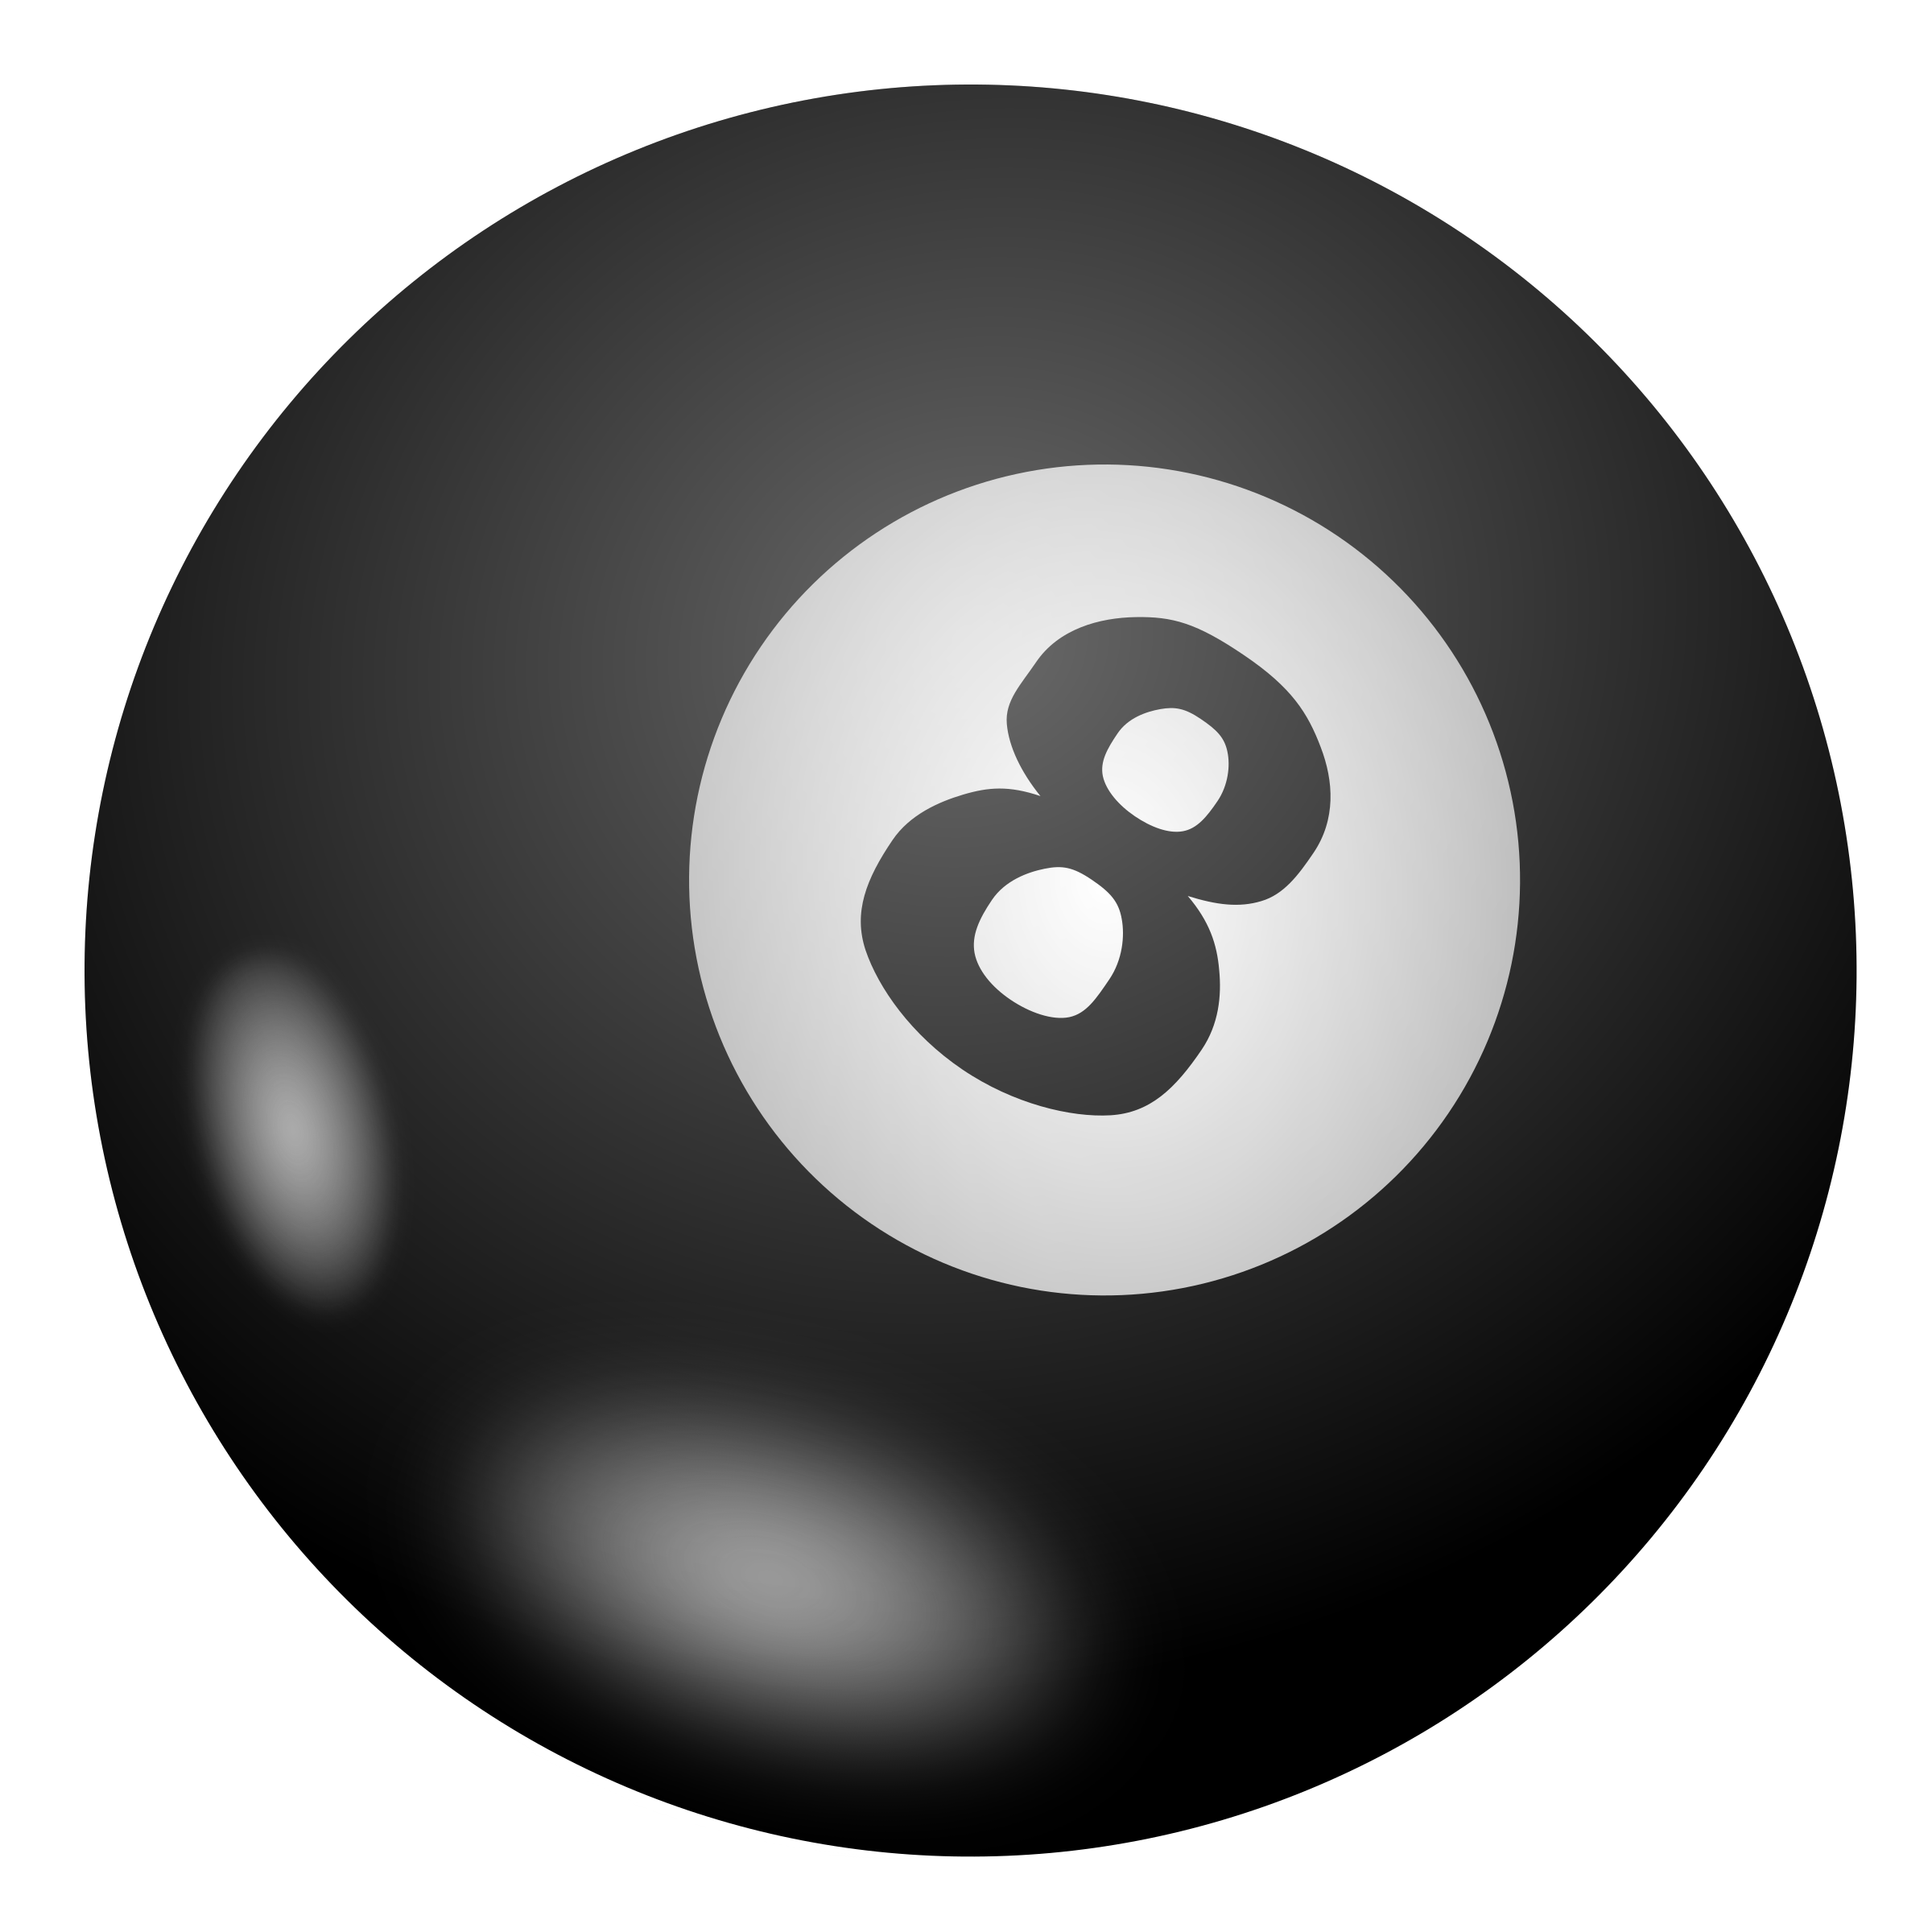 Eight ball by nicubunu